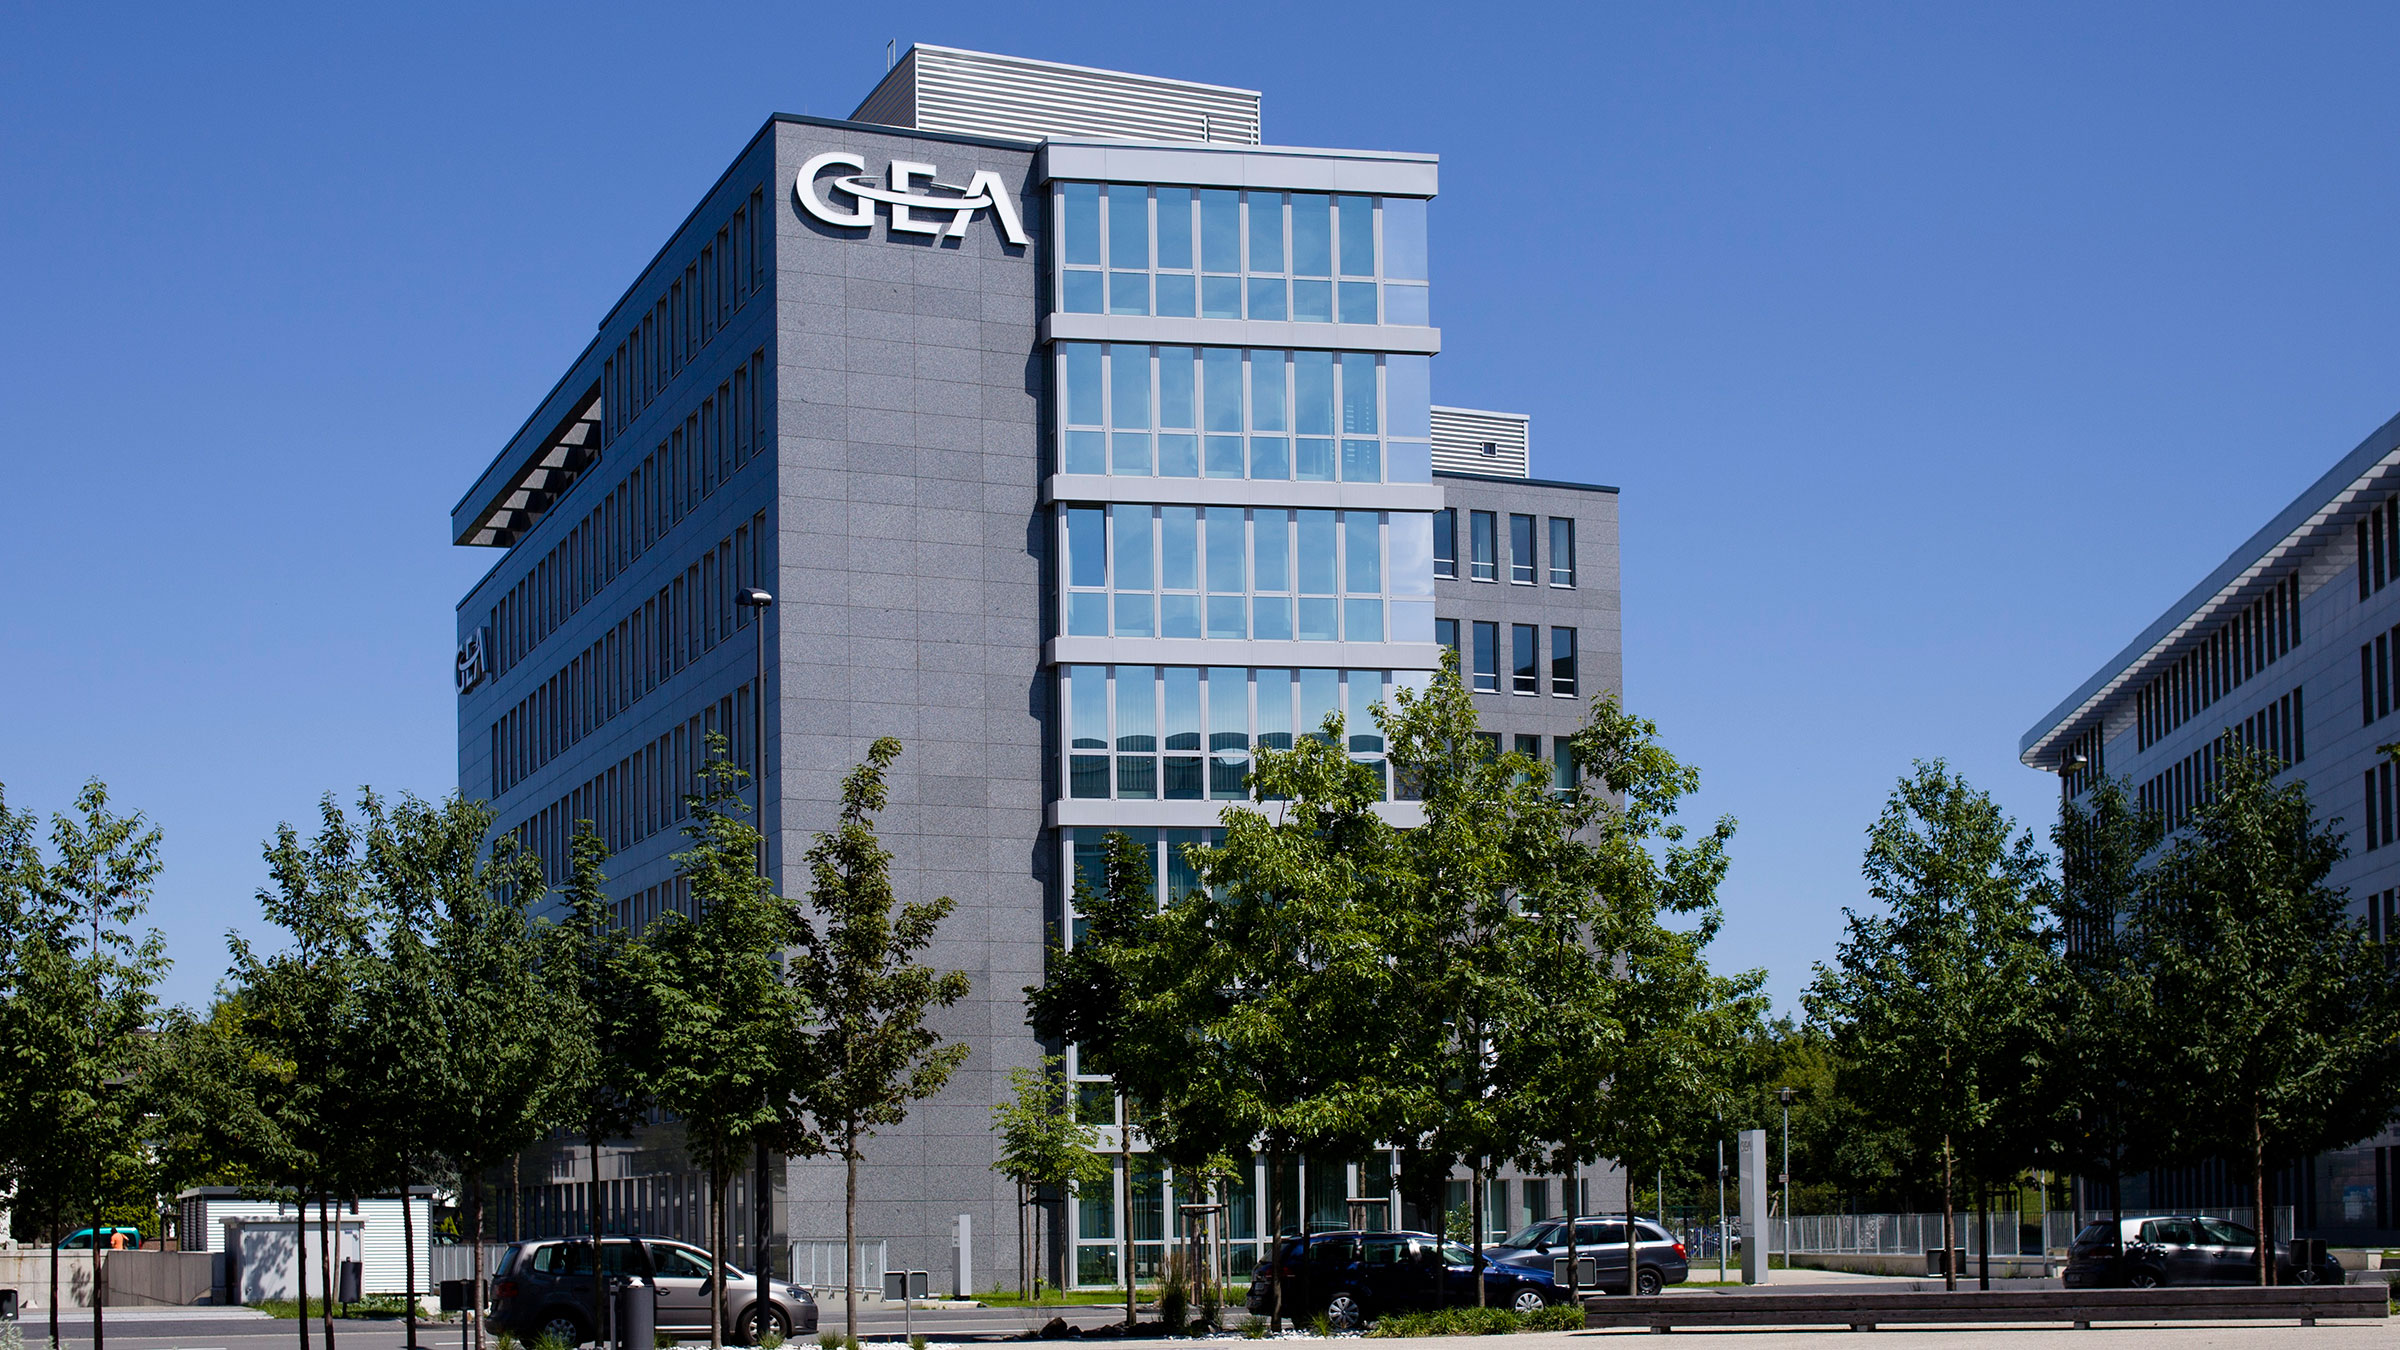 GEA Center Düsseldorf